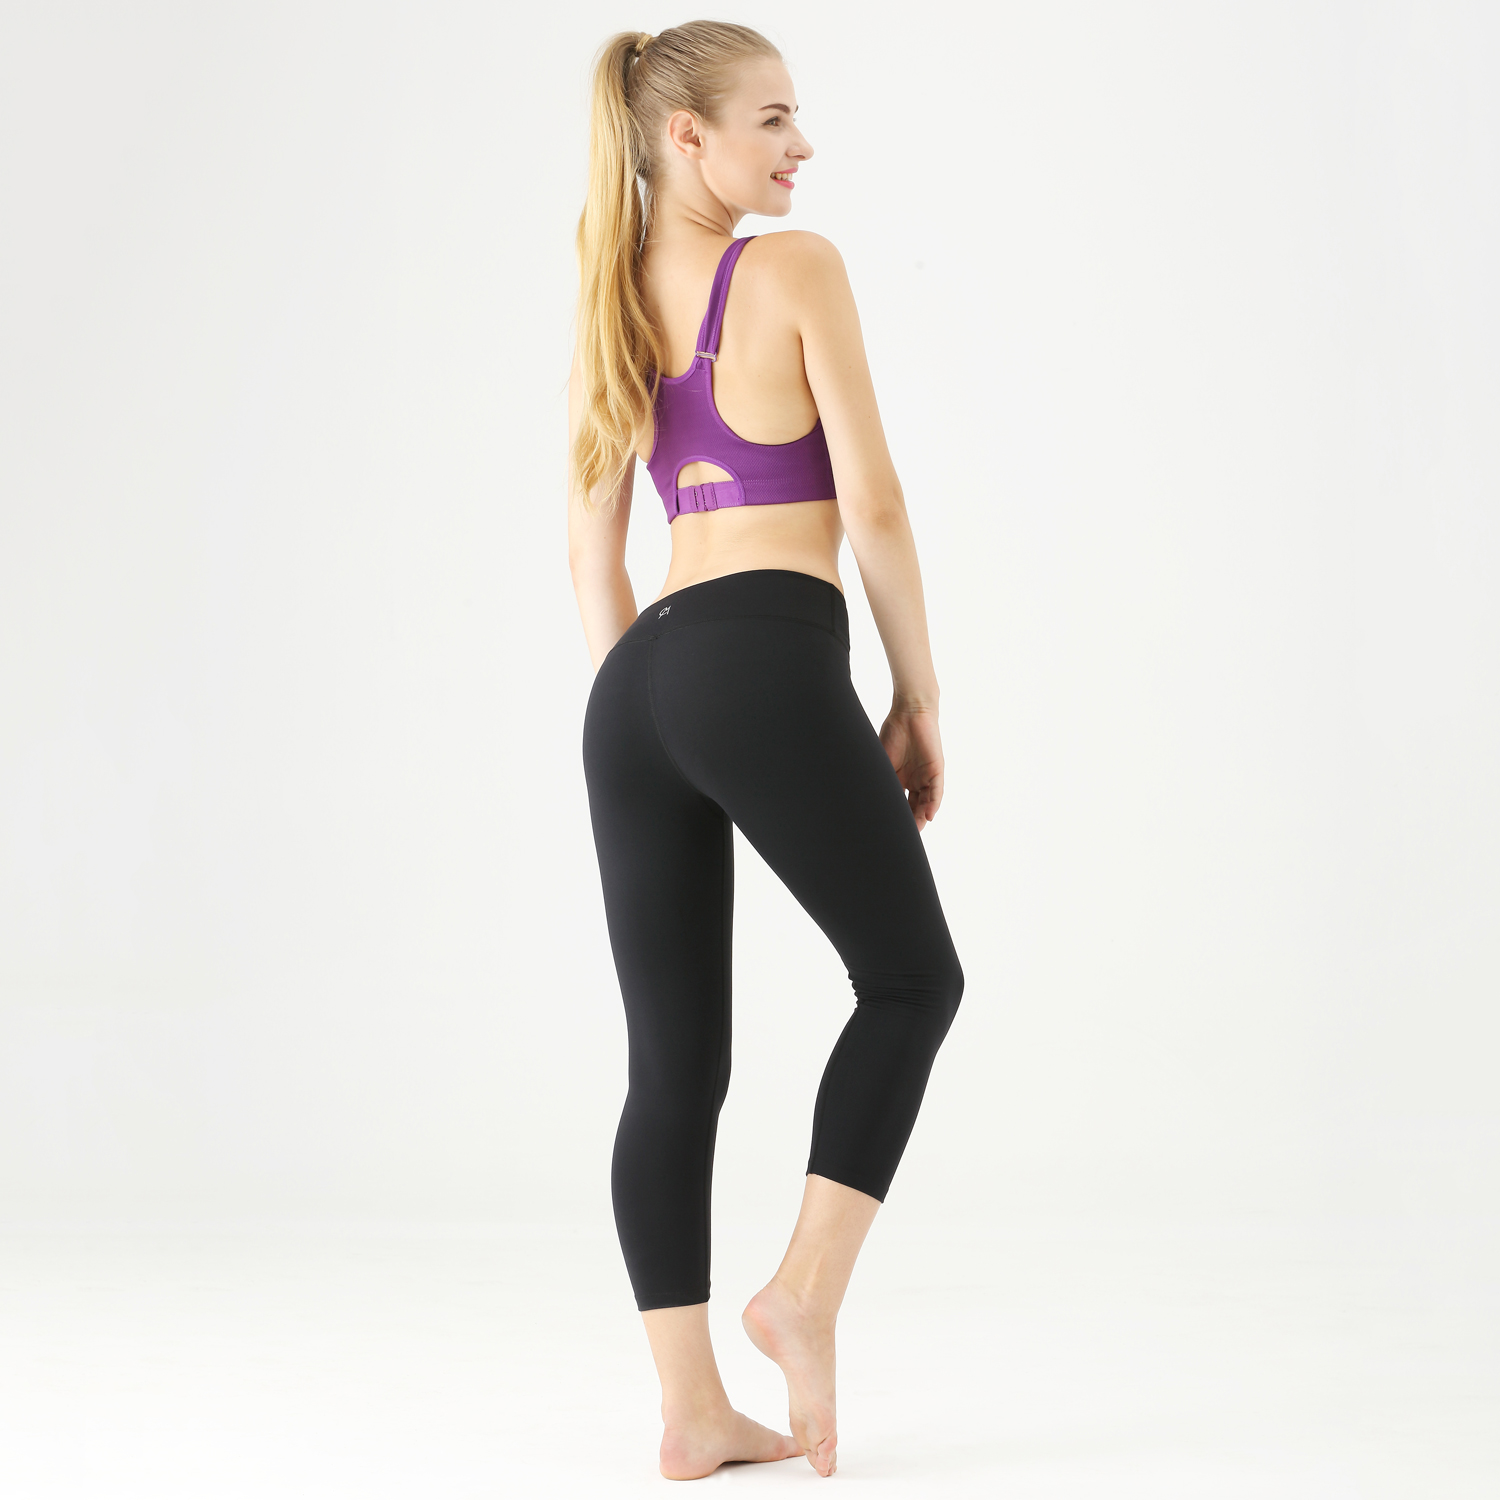 Made with you in mind in a variety of fabrics, styles, and fits, our women's workout clothes are meant to move with you through any activity. Whether you're looking for tank tops, t-shirts, or sports bras, find the right shirts for your workout.